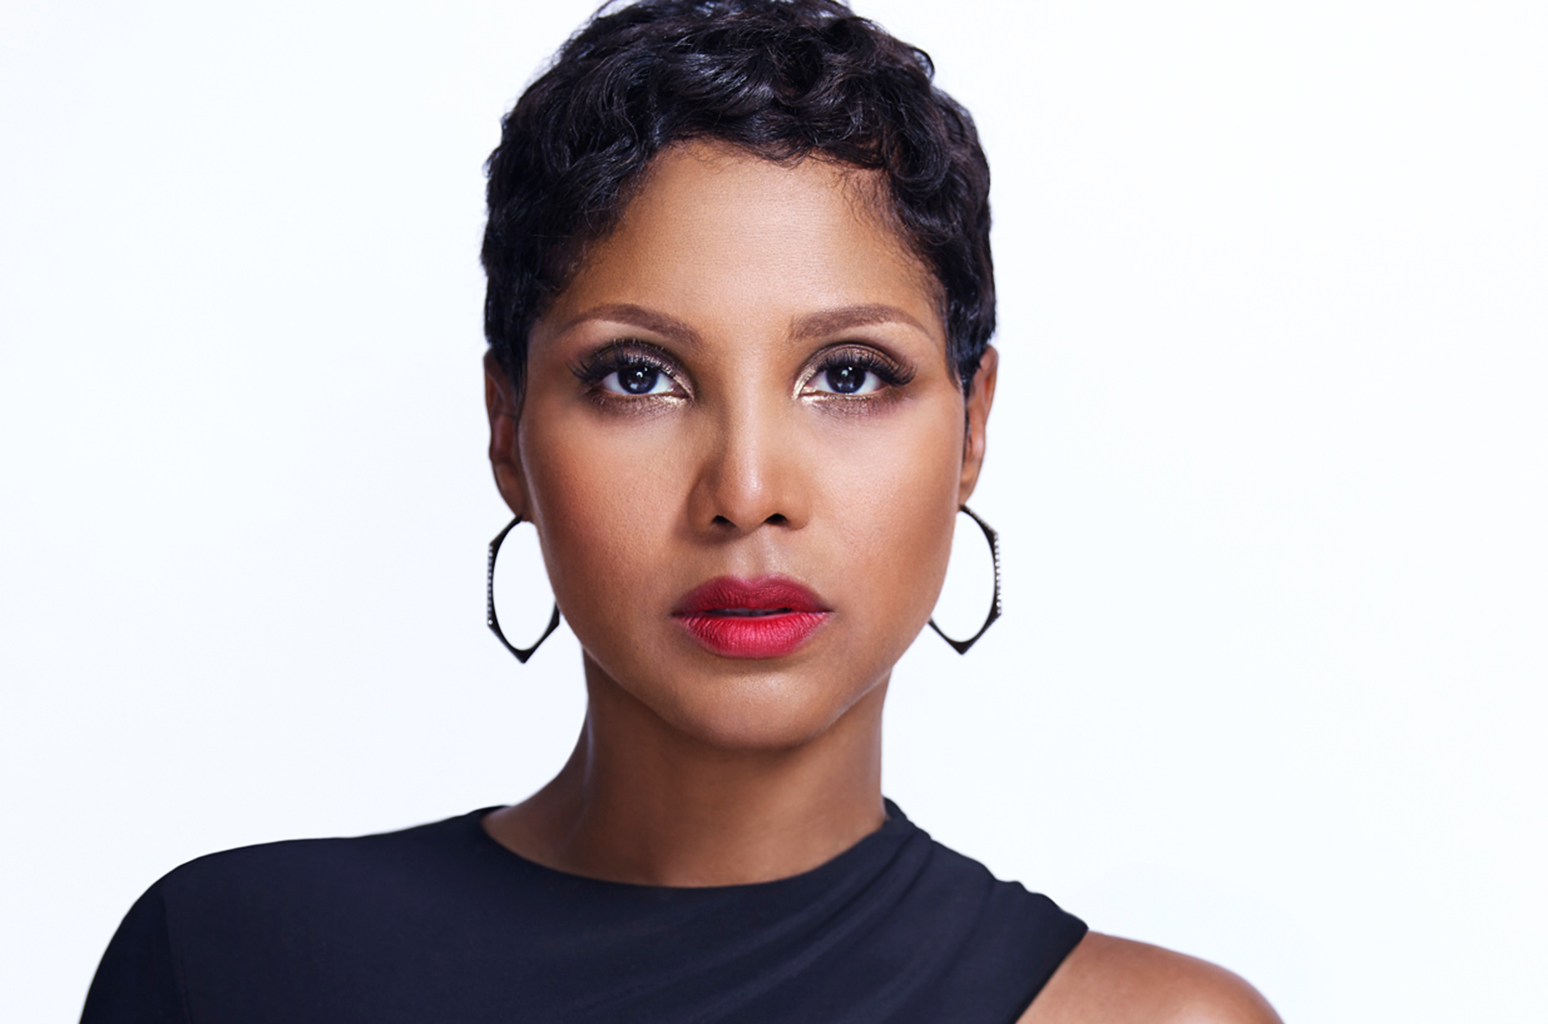 Toni Braxton's Latest Video Has Fans Freaking Out: 'It Looks Like The Coronavirus!'